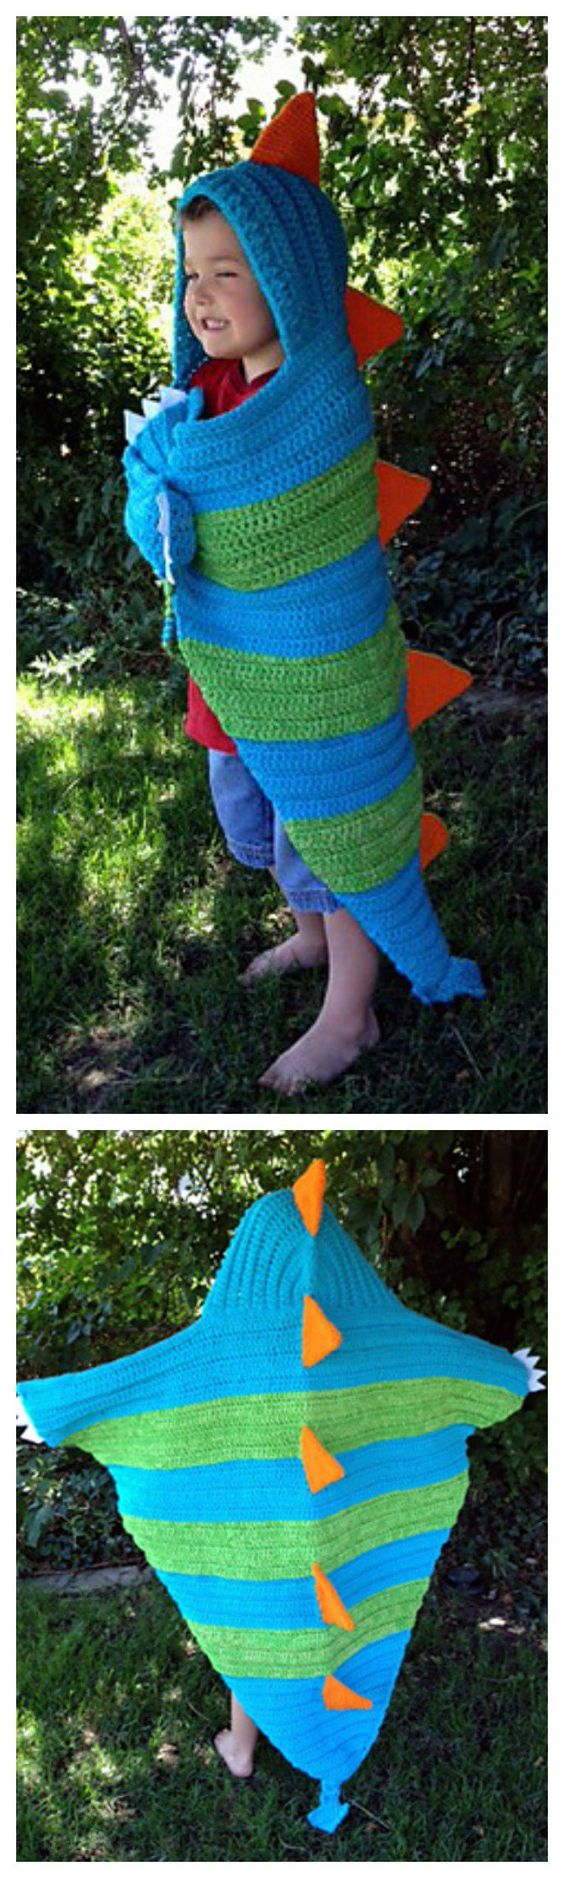 Absolutely Adorable Hooded Dragon Blanket Crochet Pattern: